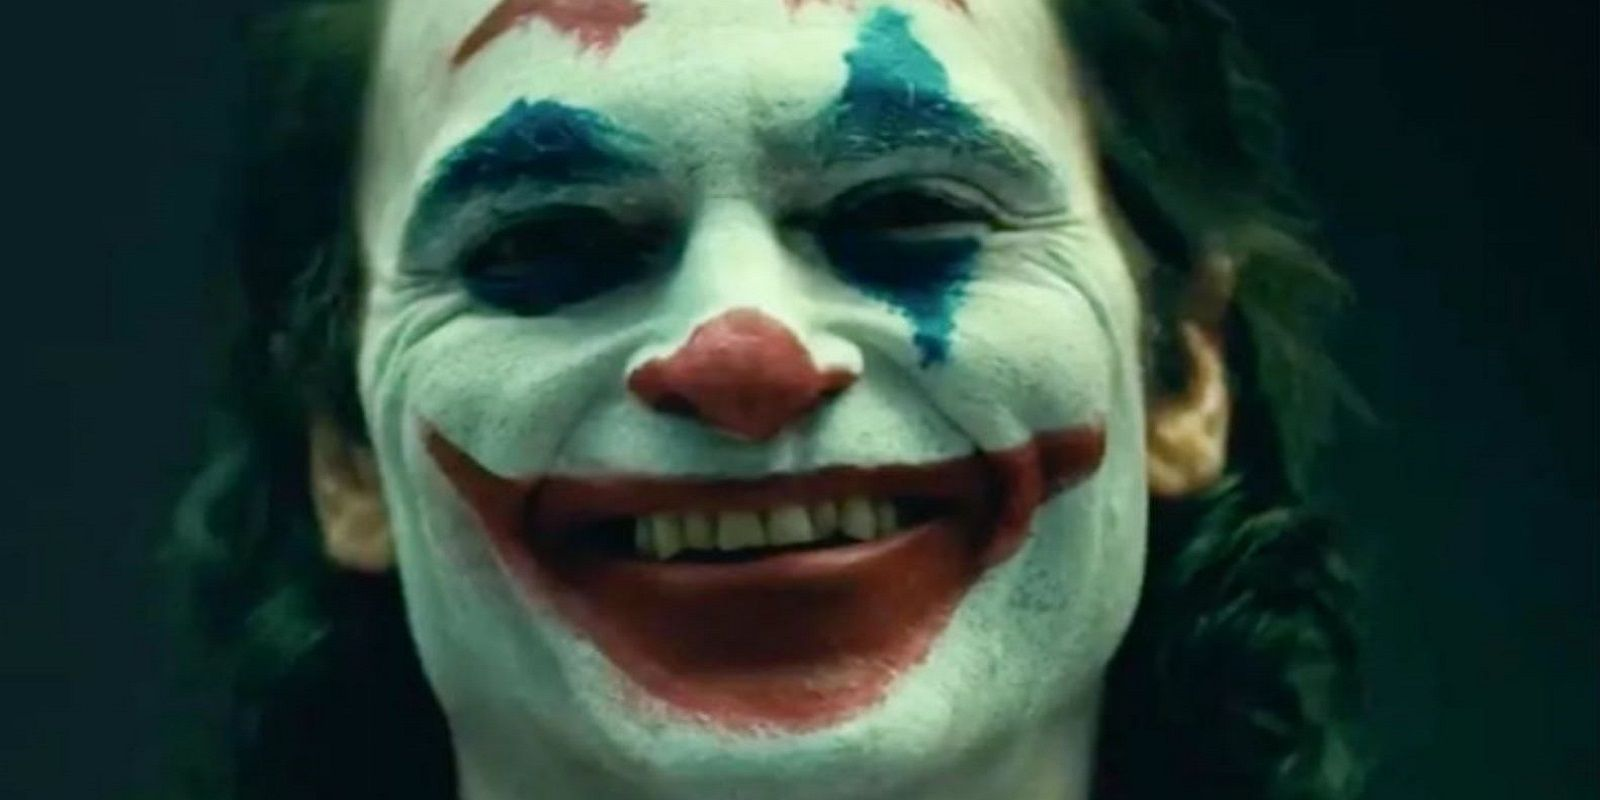 joker memes that will make you cackle like the iconic villain